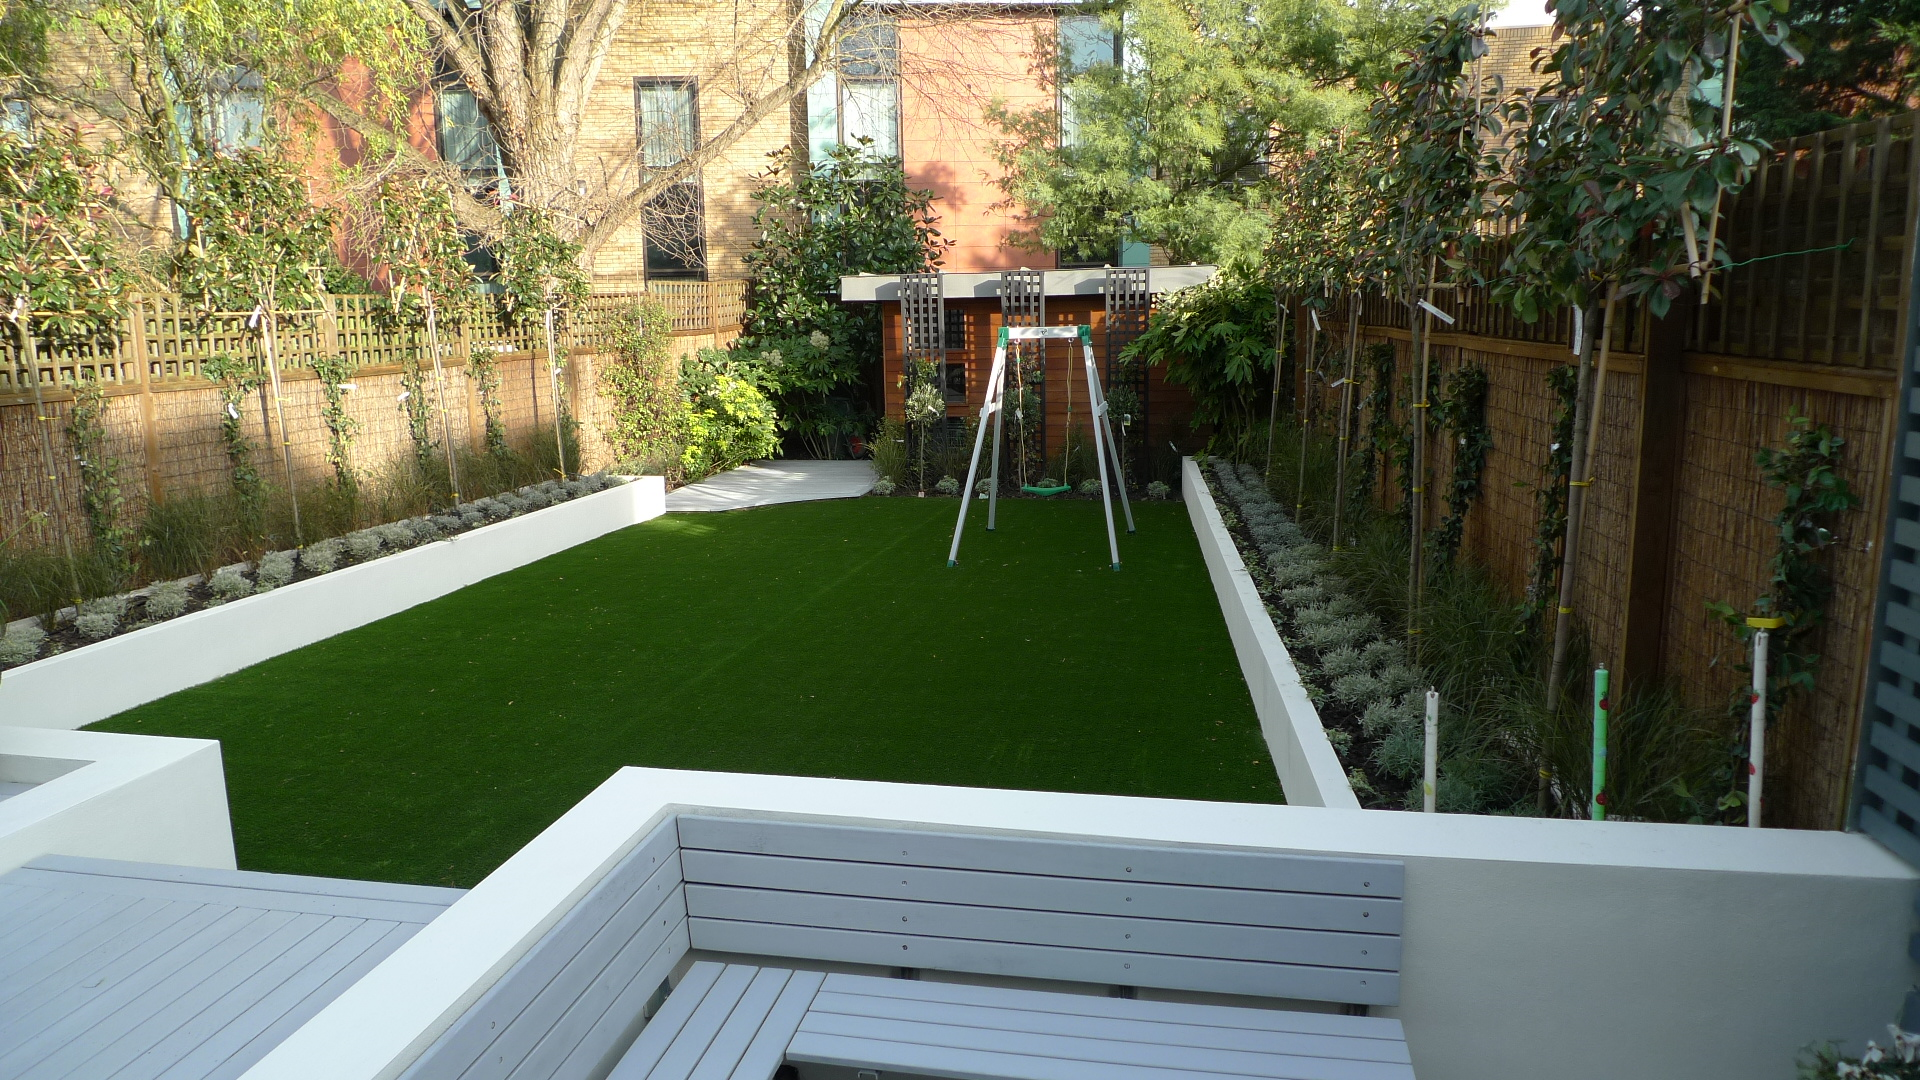 Modern garden design ideas london london garden design for Garden landscaping ideas